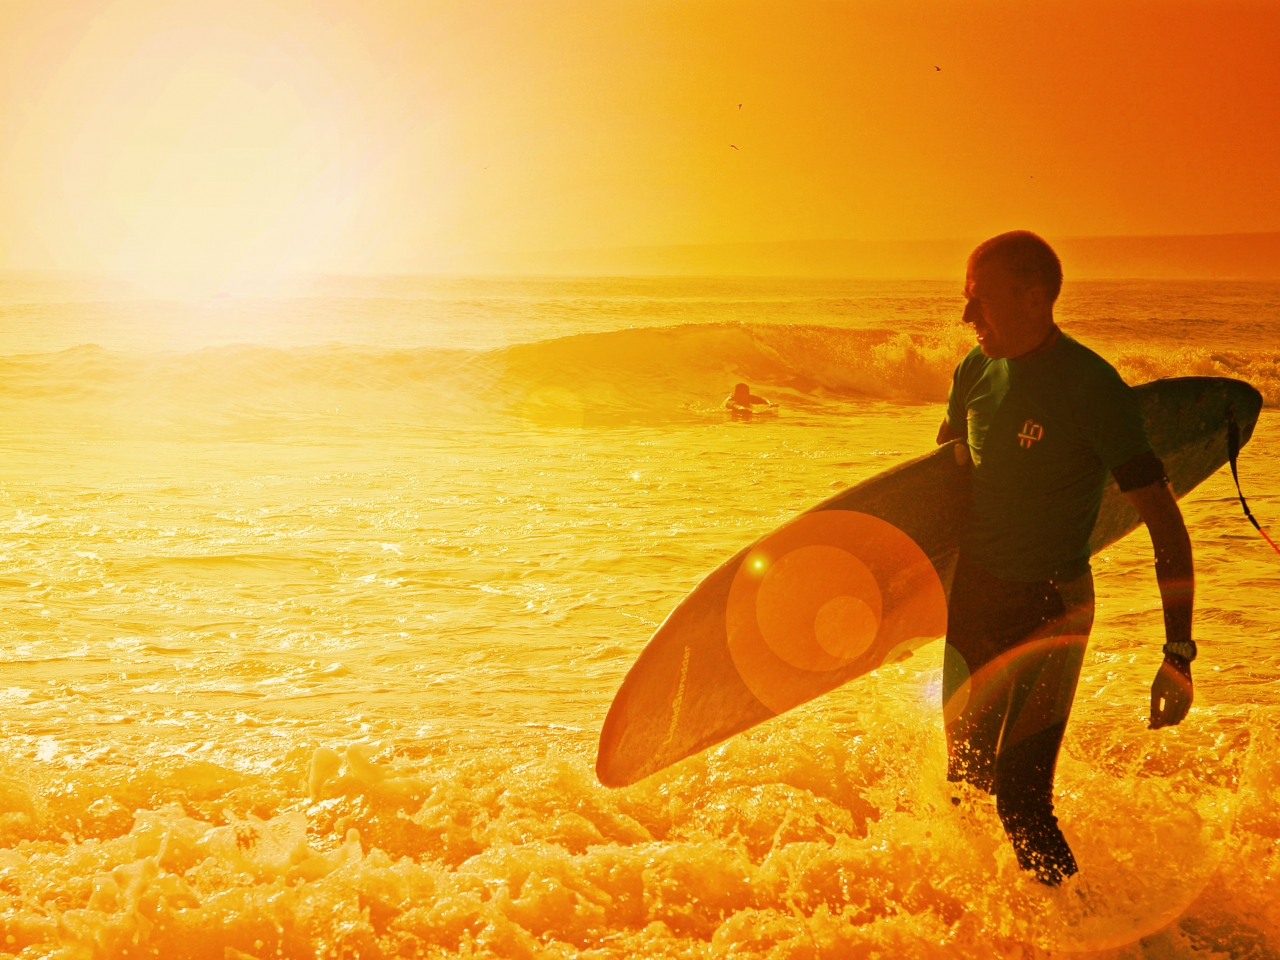 Huanchaco Surf - 1280x960